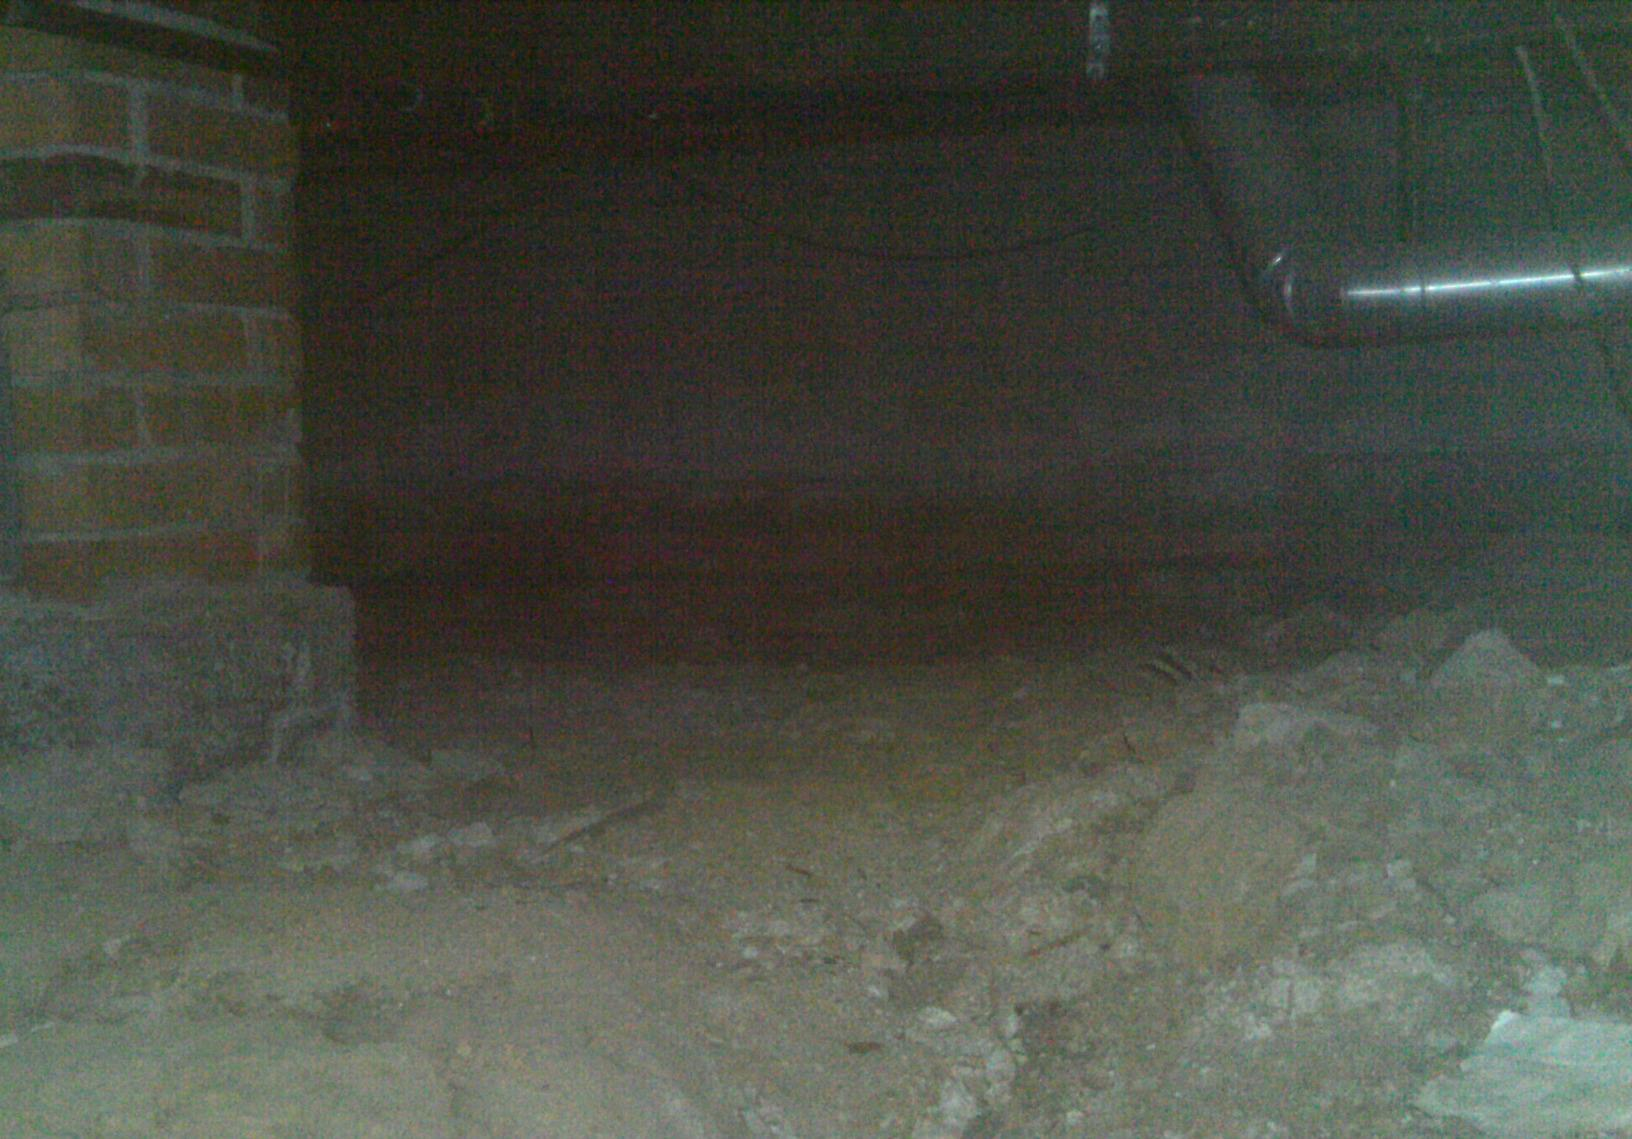 Because the crawl space was not sealed properly, moisture seeped through making the crawl dingy and smelly.